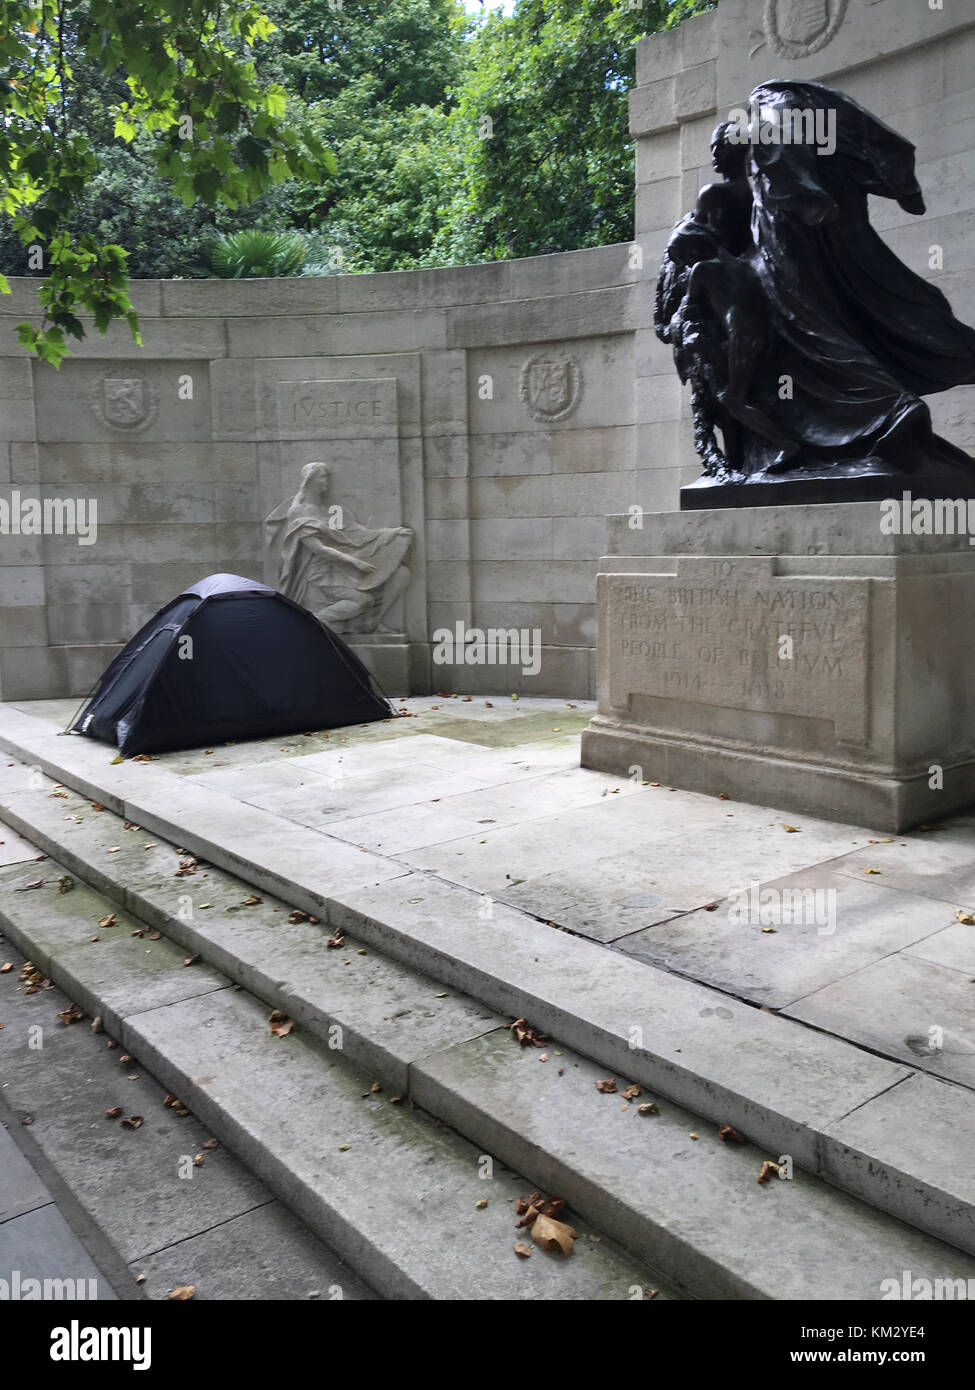 Black camping tent has been set up near the Anglo-Belgian Memorial on Victoria Embankment. - Stock Image